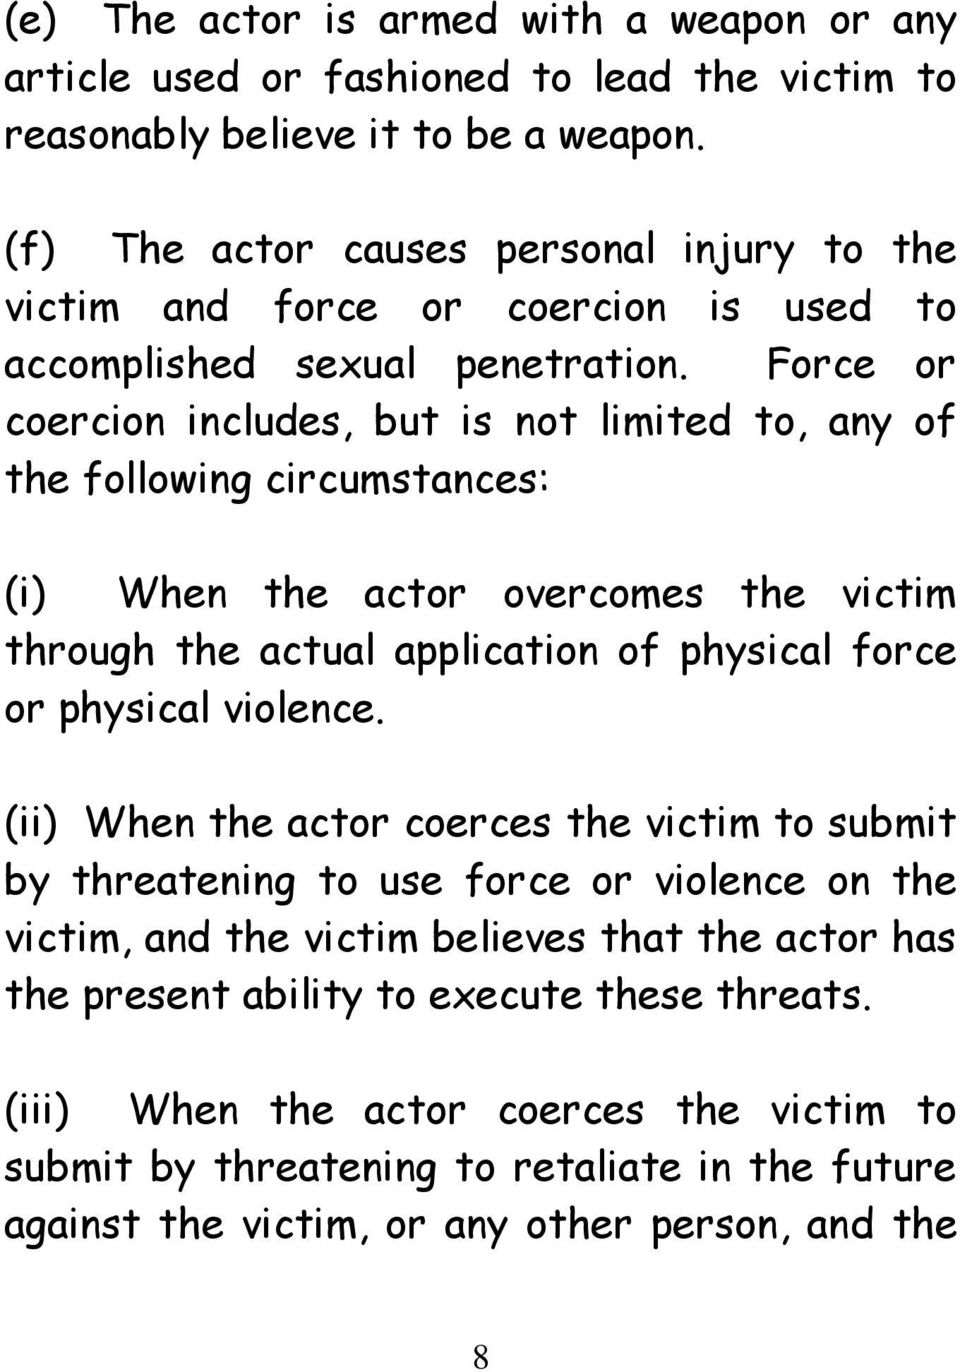 Force or coercion includes, but is not limited to, any of the following circumstances: (i) When the actor overcomes the victim through the actual application of physical force or physical